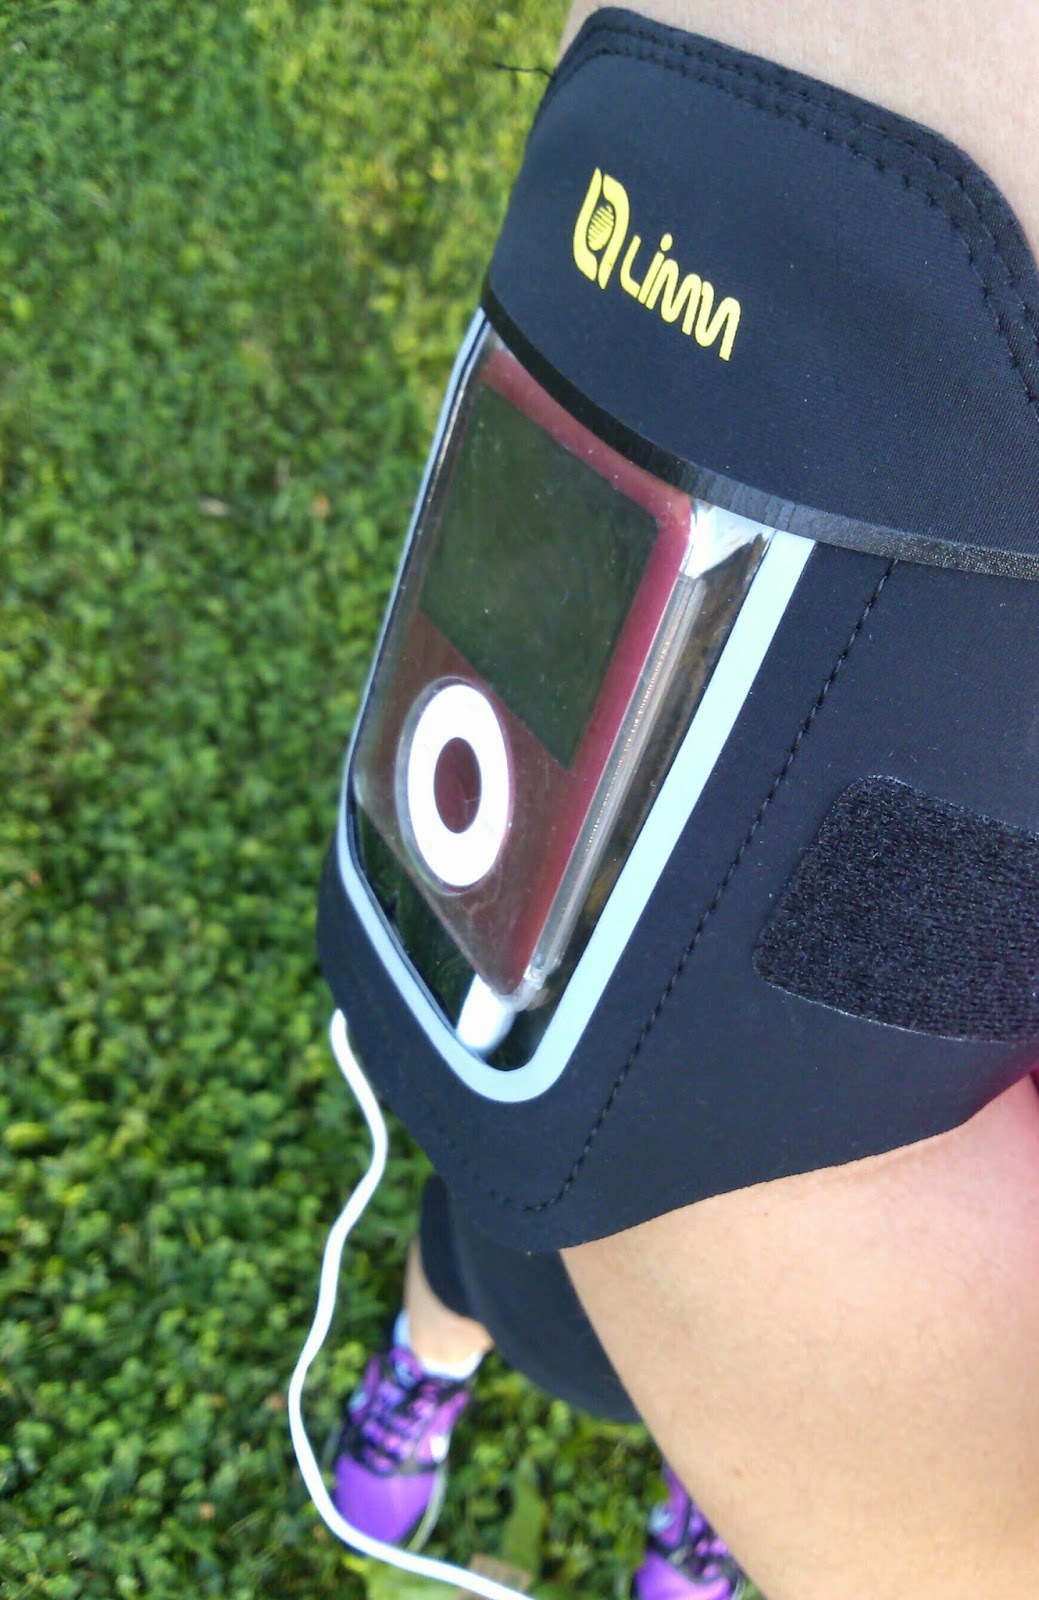 Limm Sports Armband Review